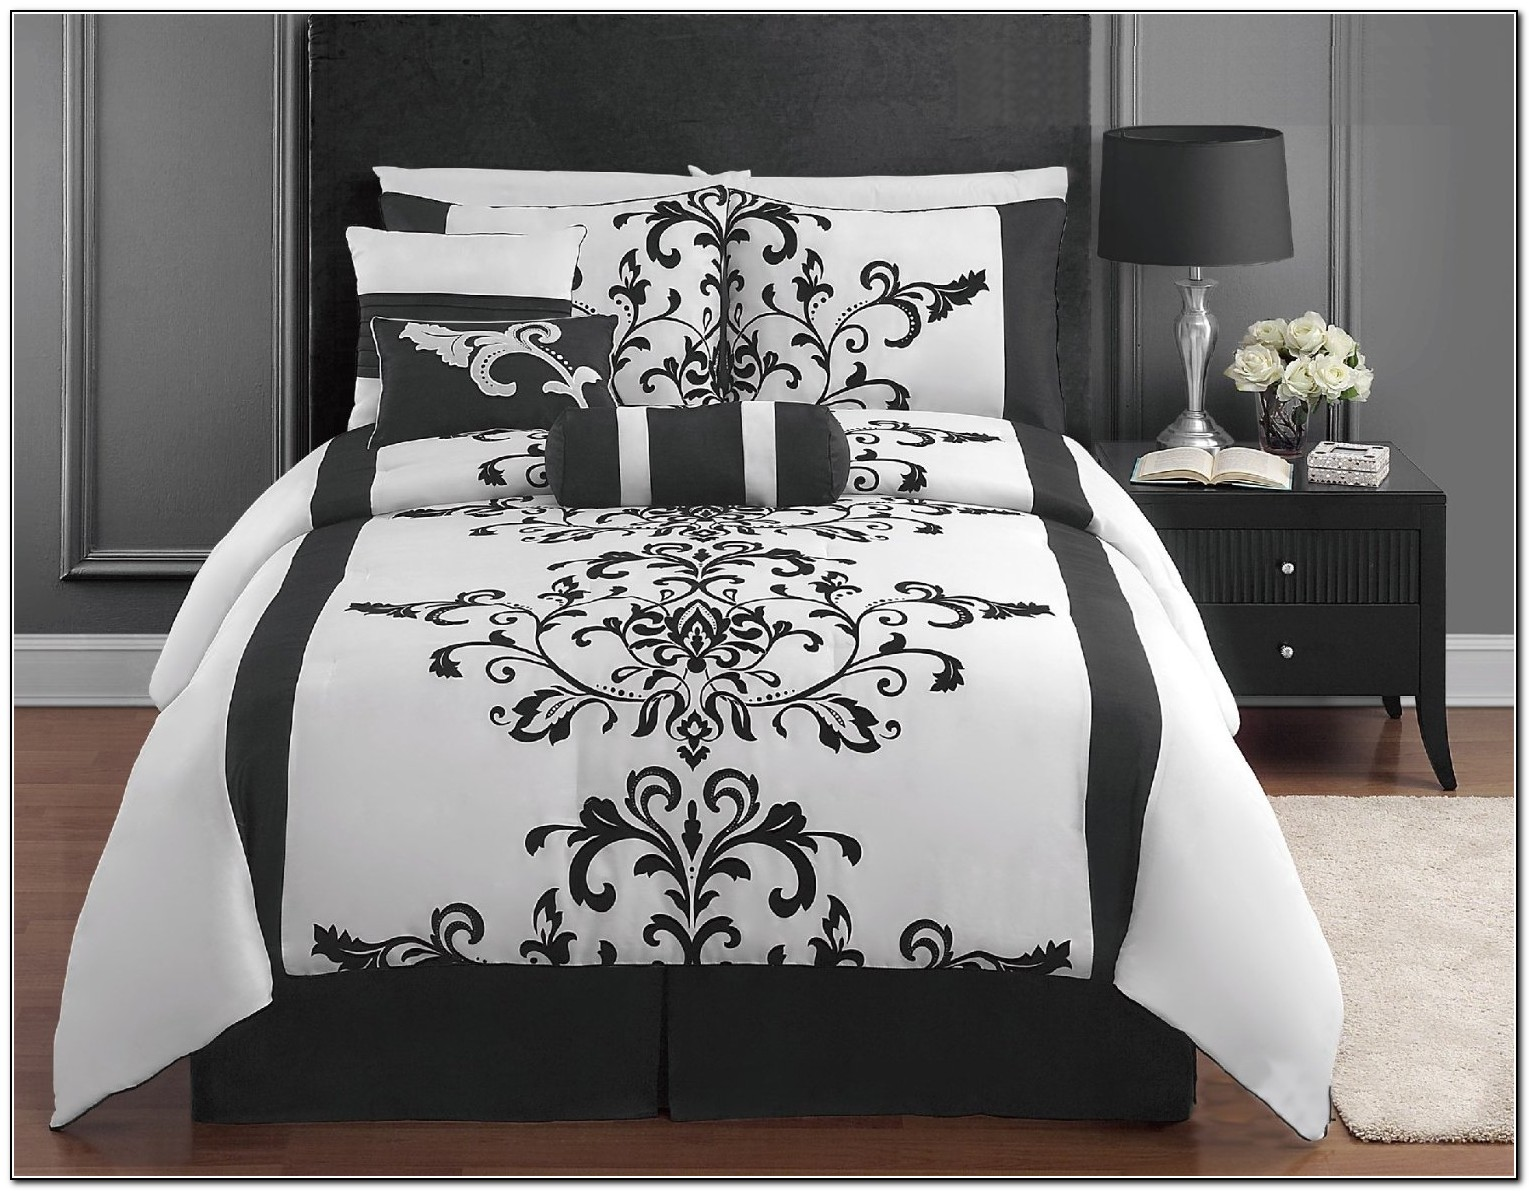 Black And White Bedding Sets Full Size Beds Home